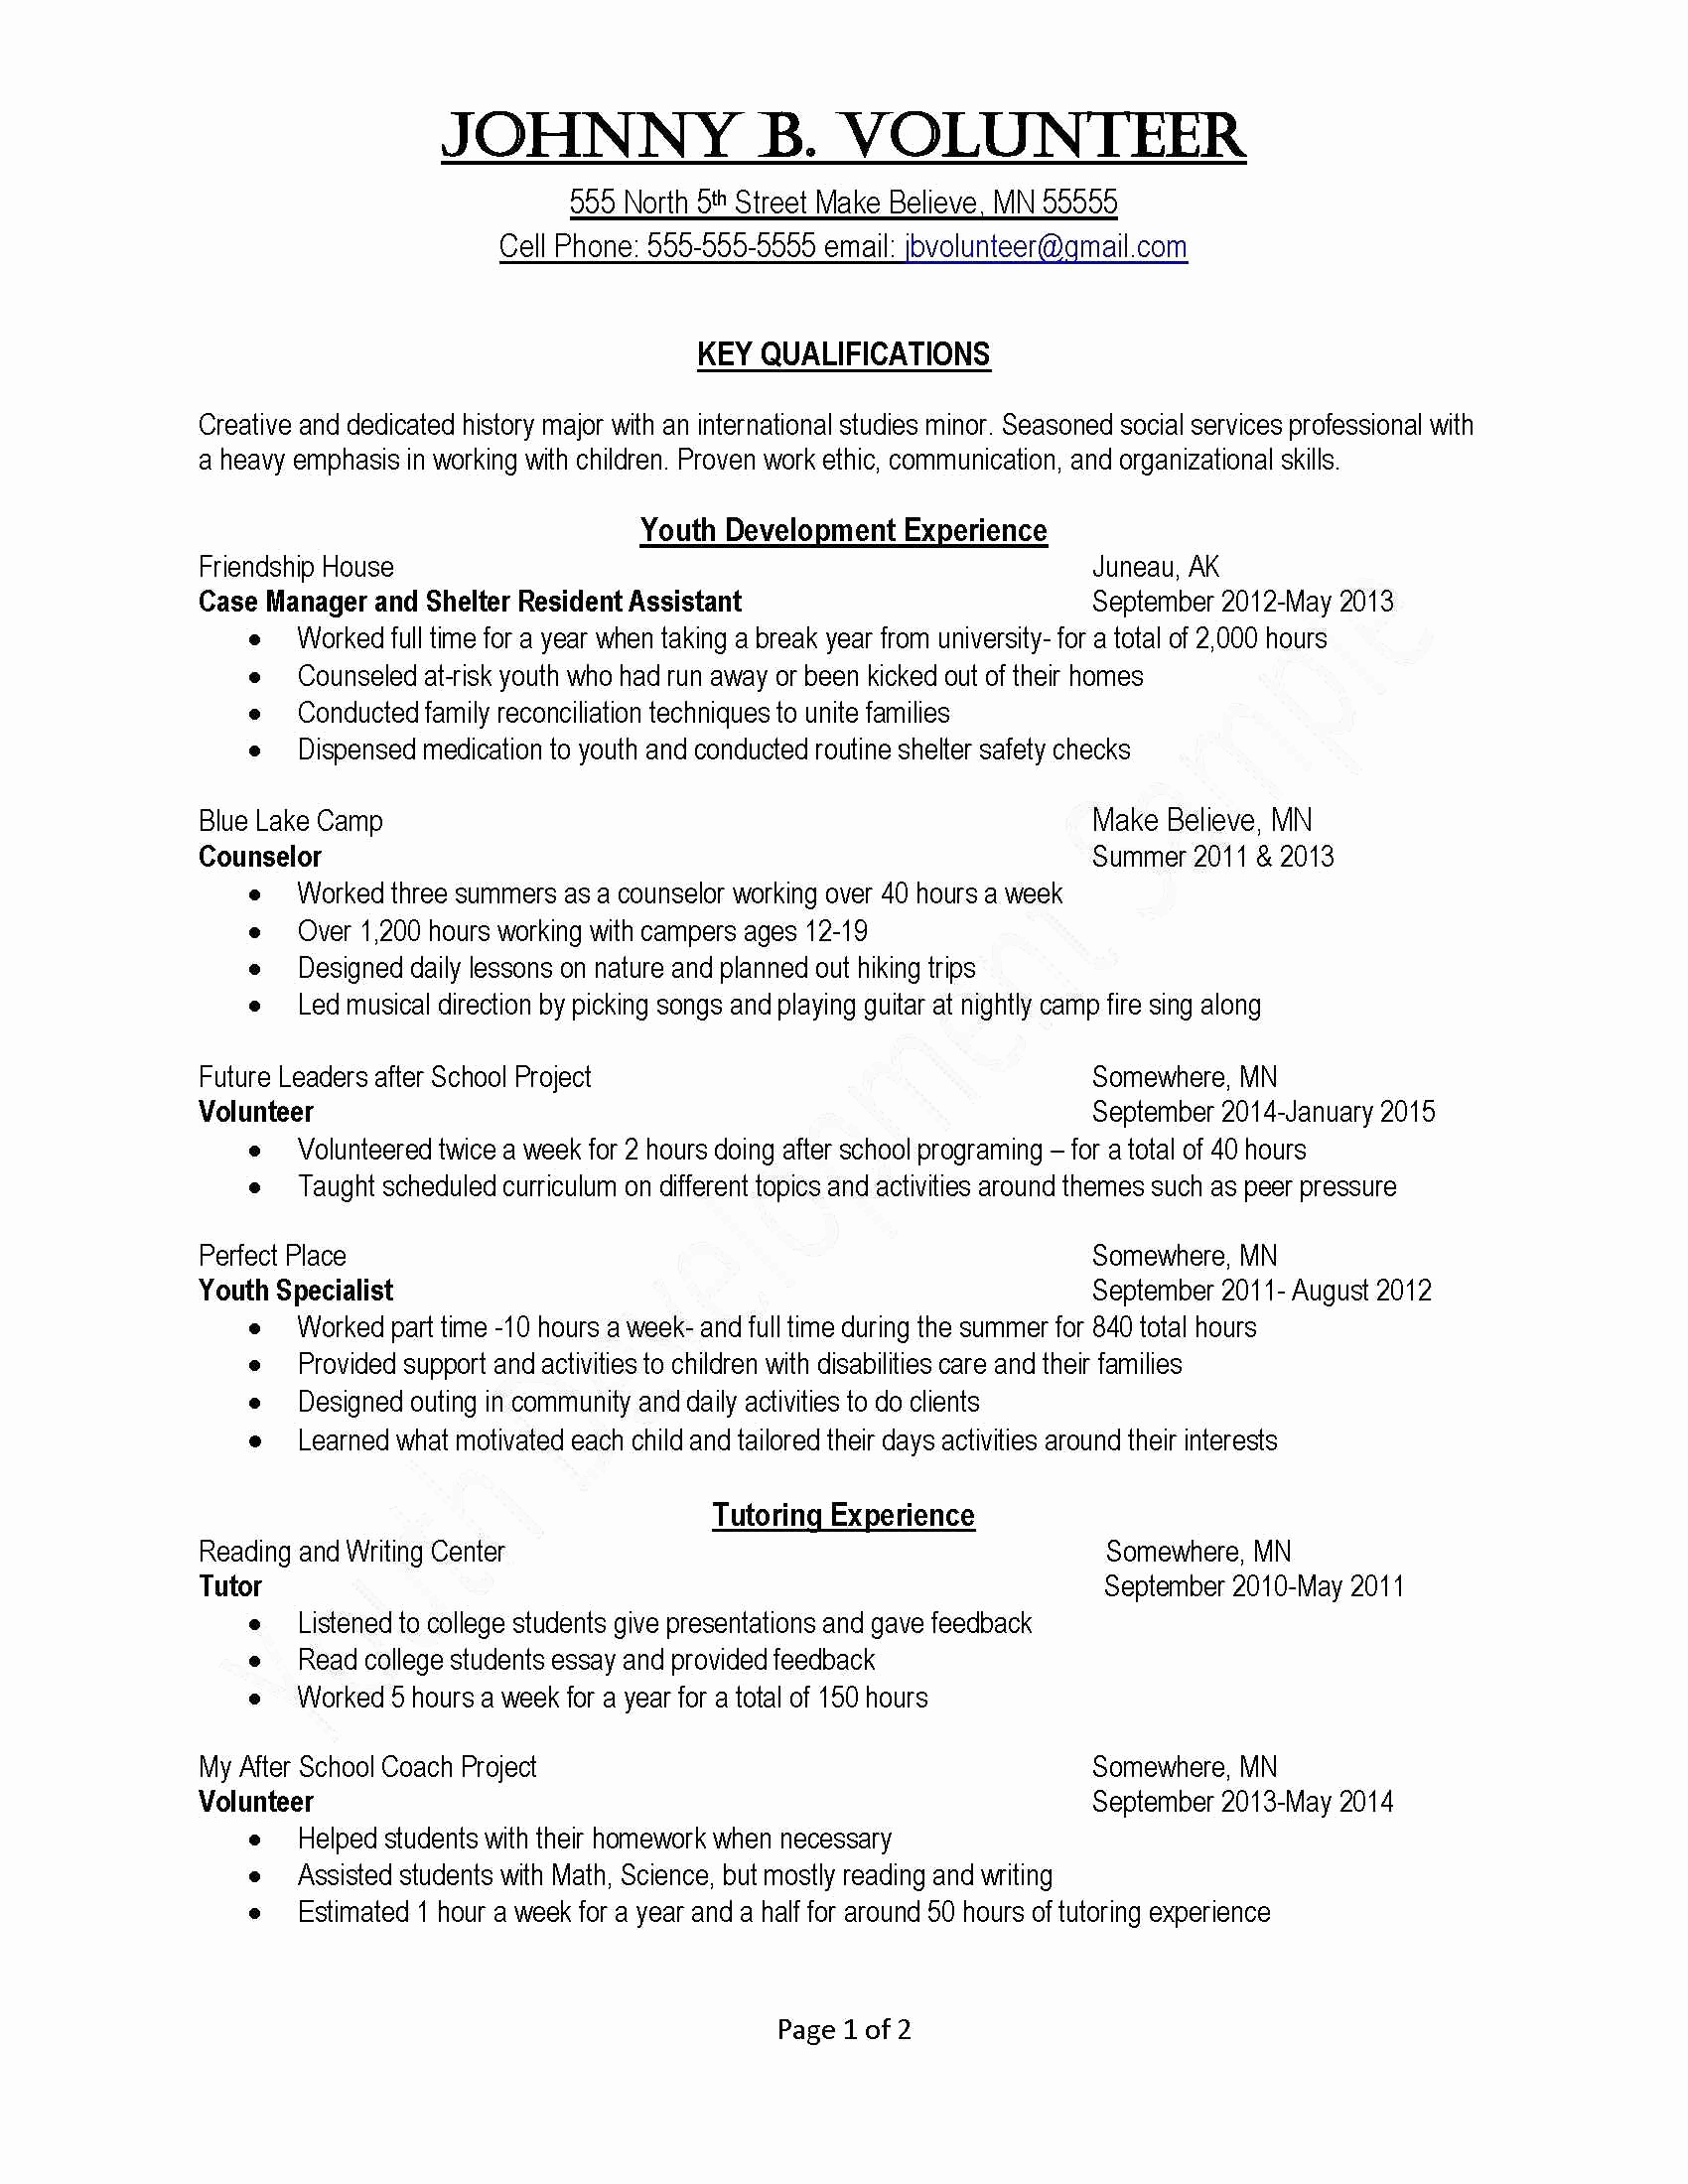 Cv Template 19 Year Old